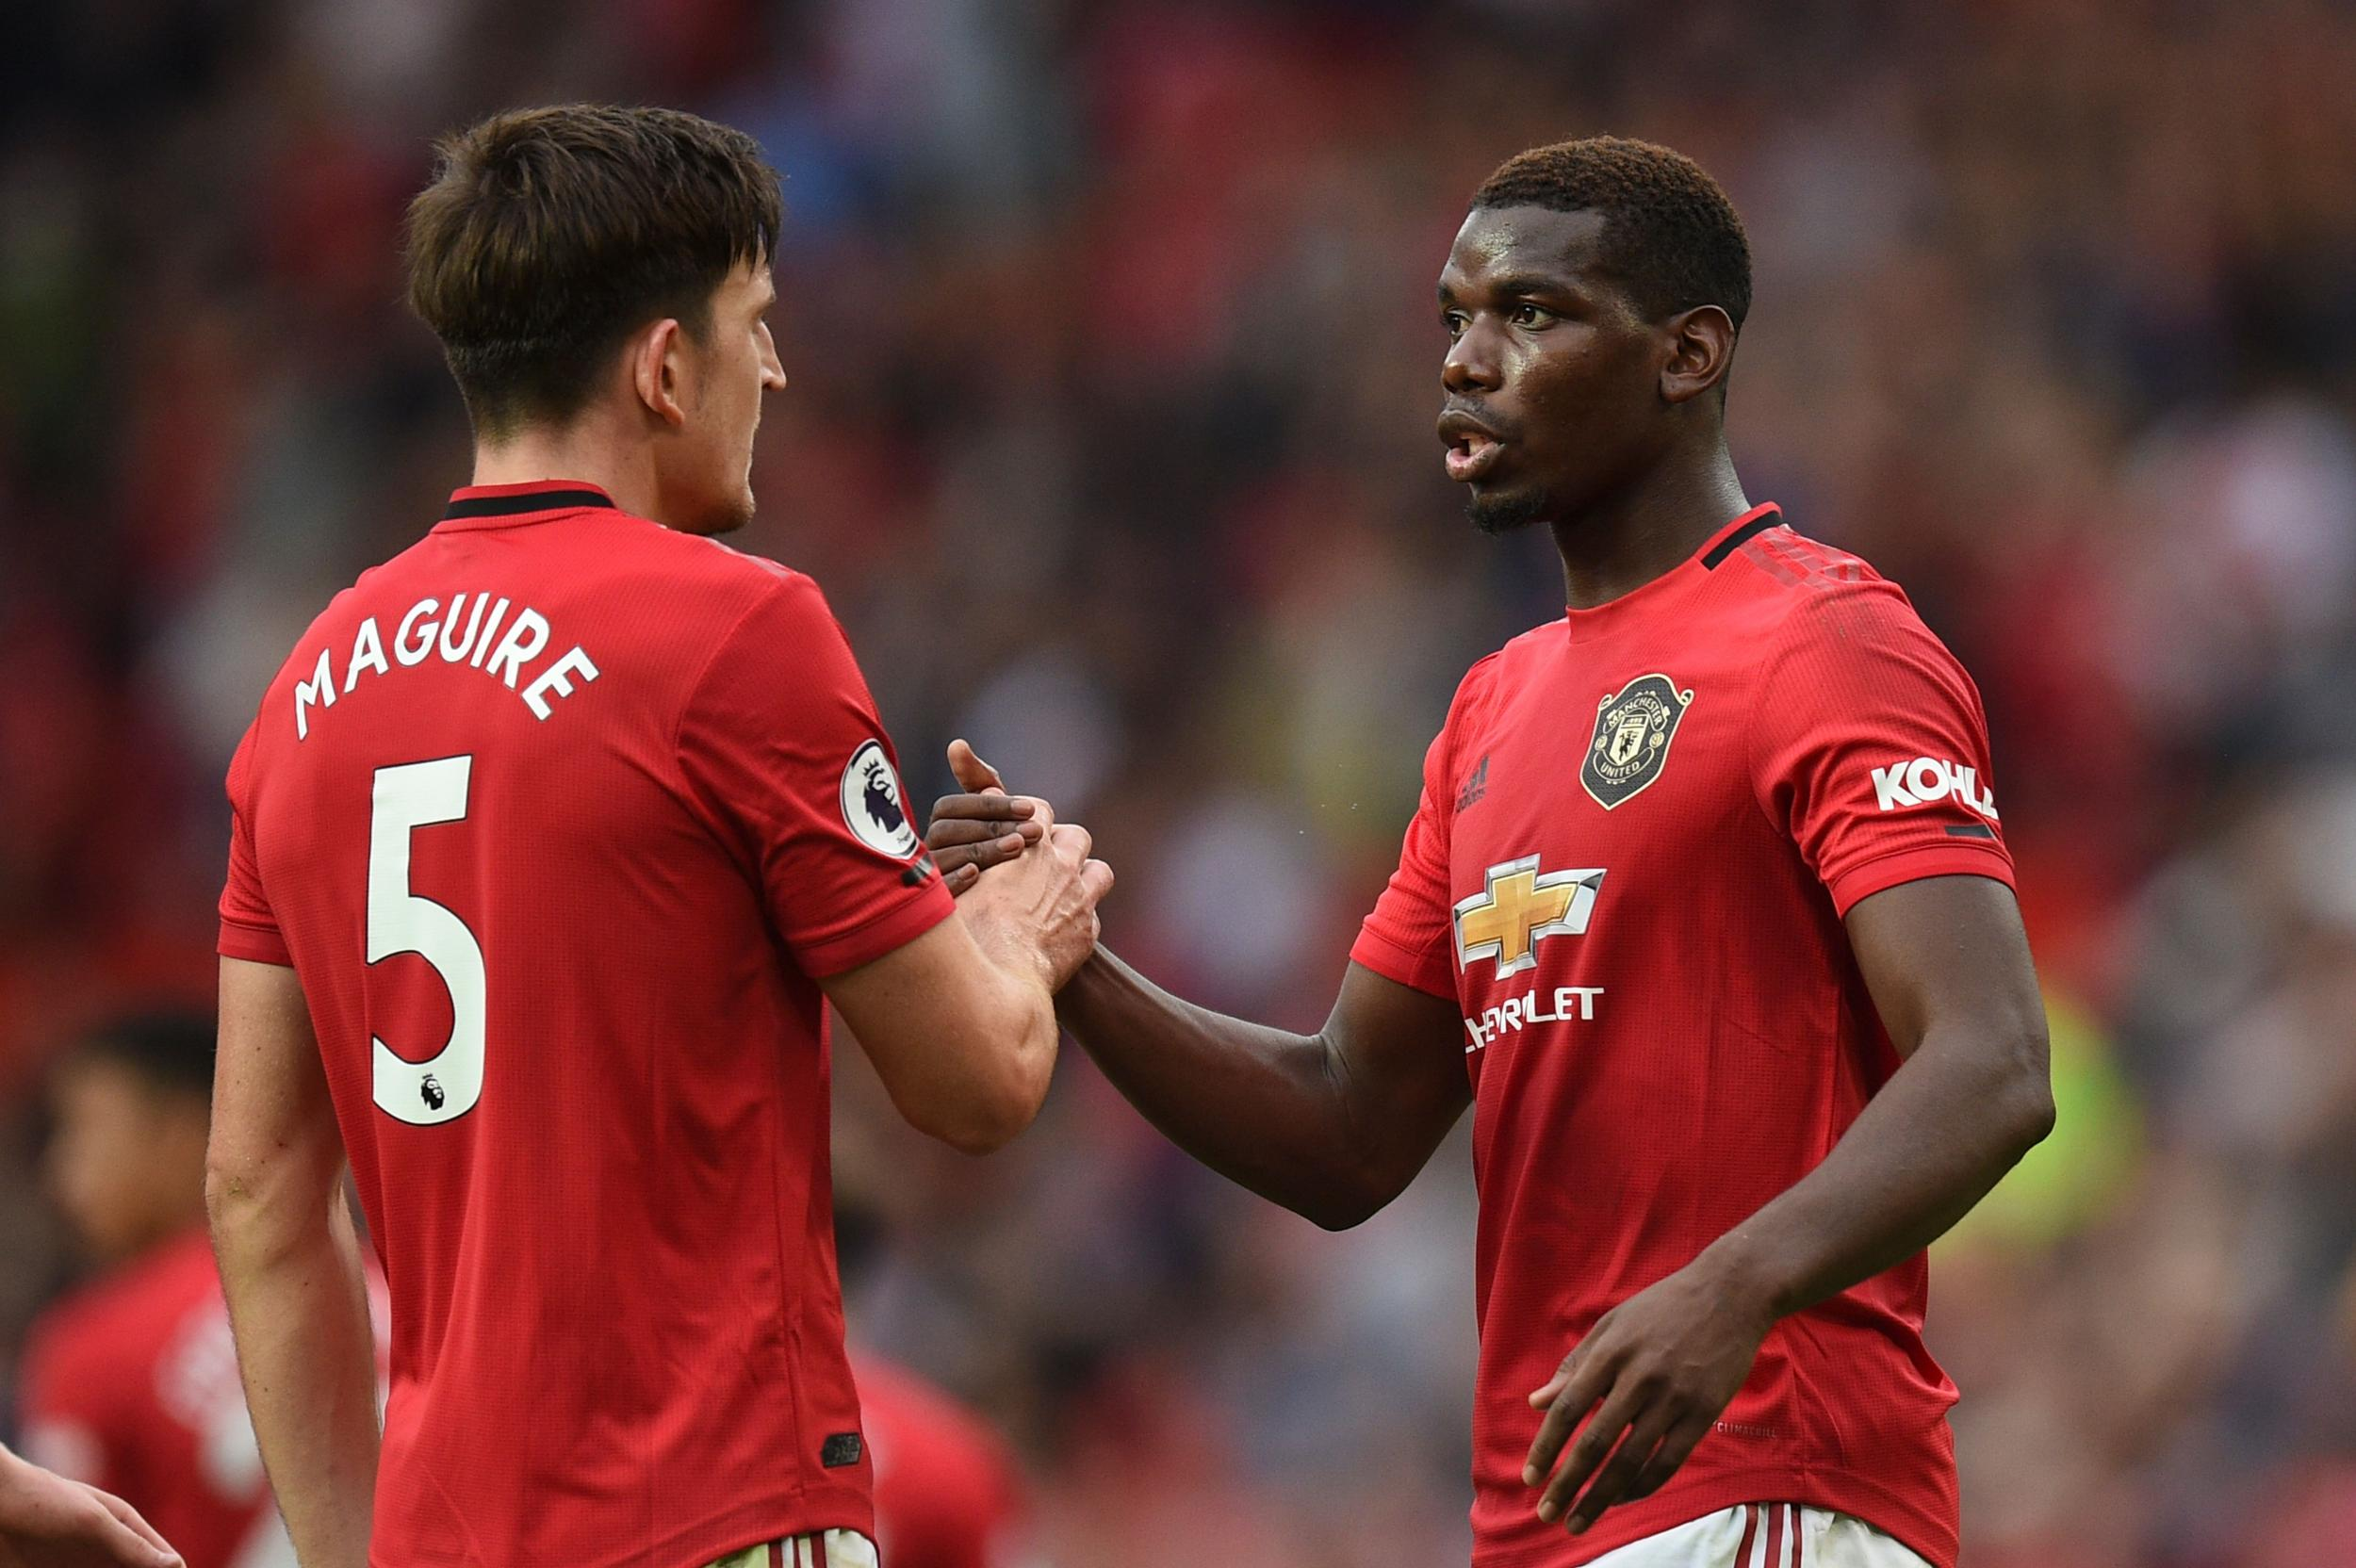 Manchester United: Harry Maguire calls for Twitter ID checks after Paul Pogba racially abused